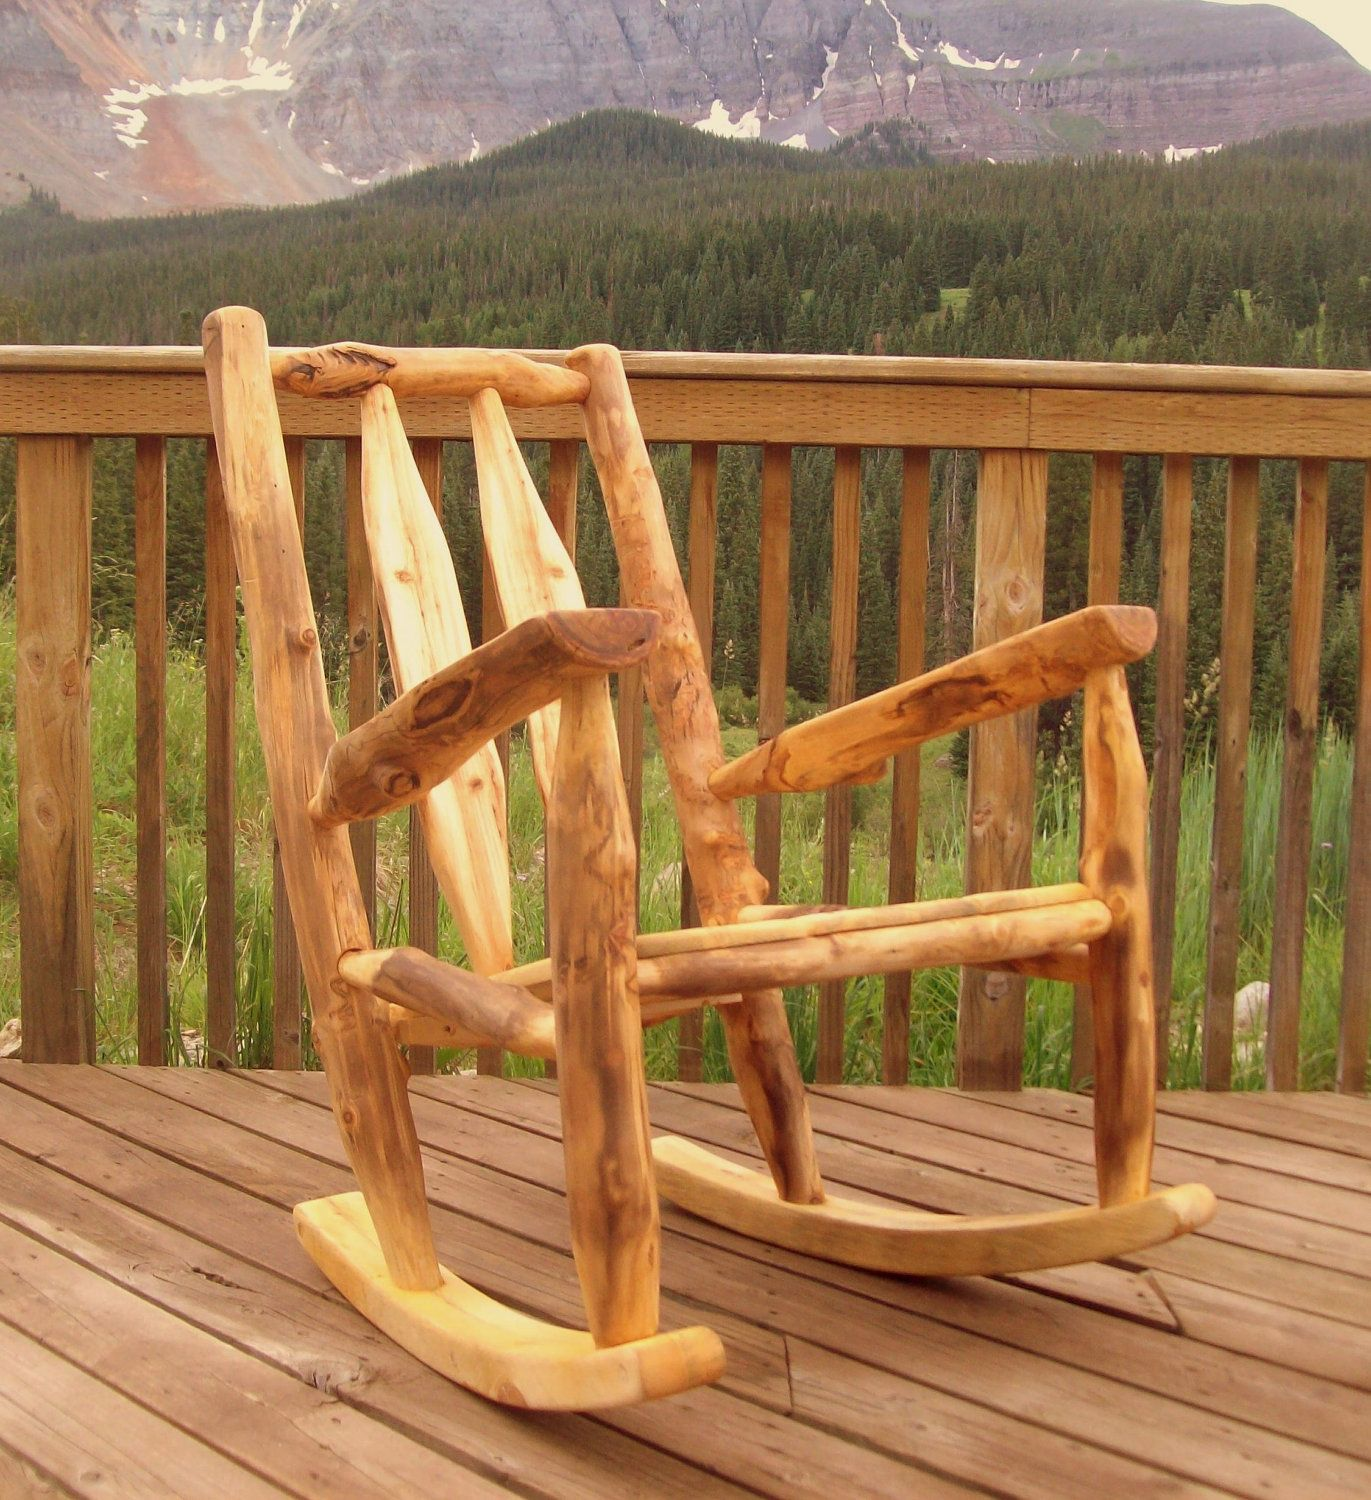 Merveilleux Reclaim Wood Rocking Chair     Made From Sustainable Aspen Logs, Rustic  Furniture From Naturally Aspen. $795.00, Via Etsy.